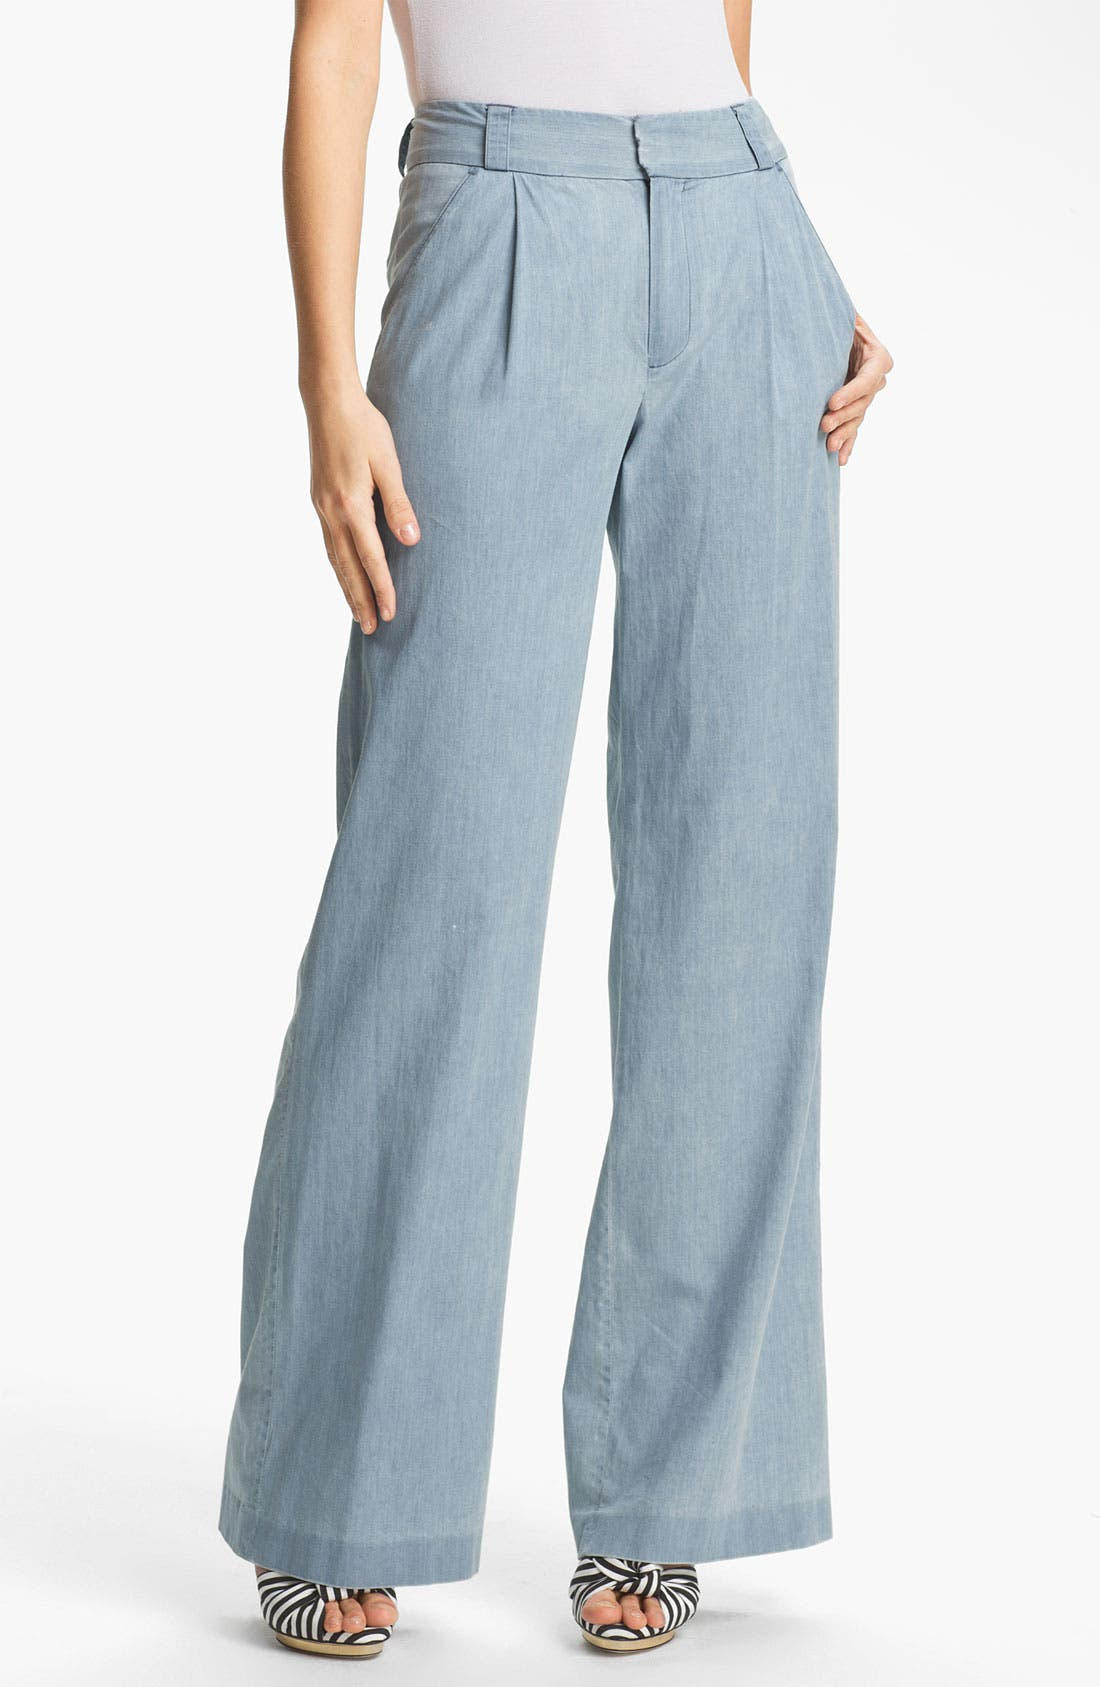 Alternate Image 1 Selected - Alice + Olivia 'Eric' Wide Leg Chambray Denim Pants